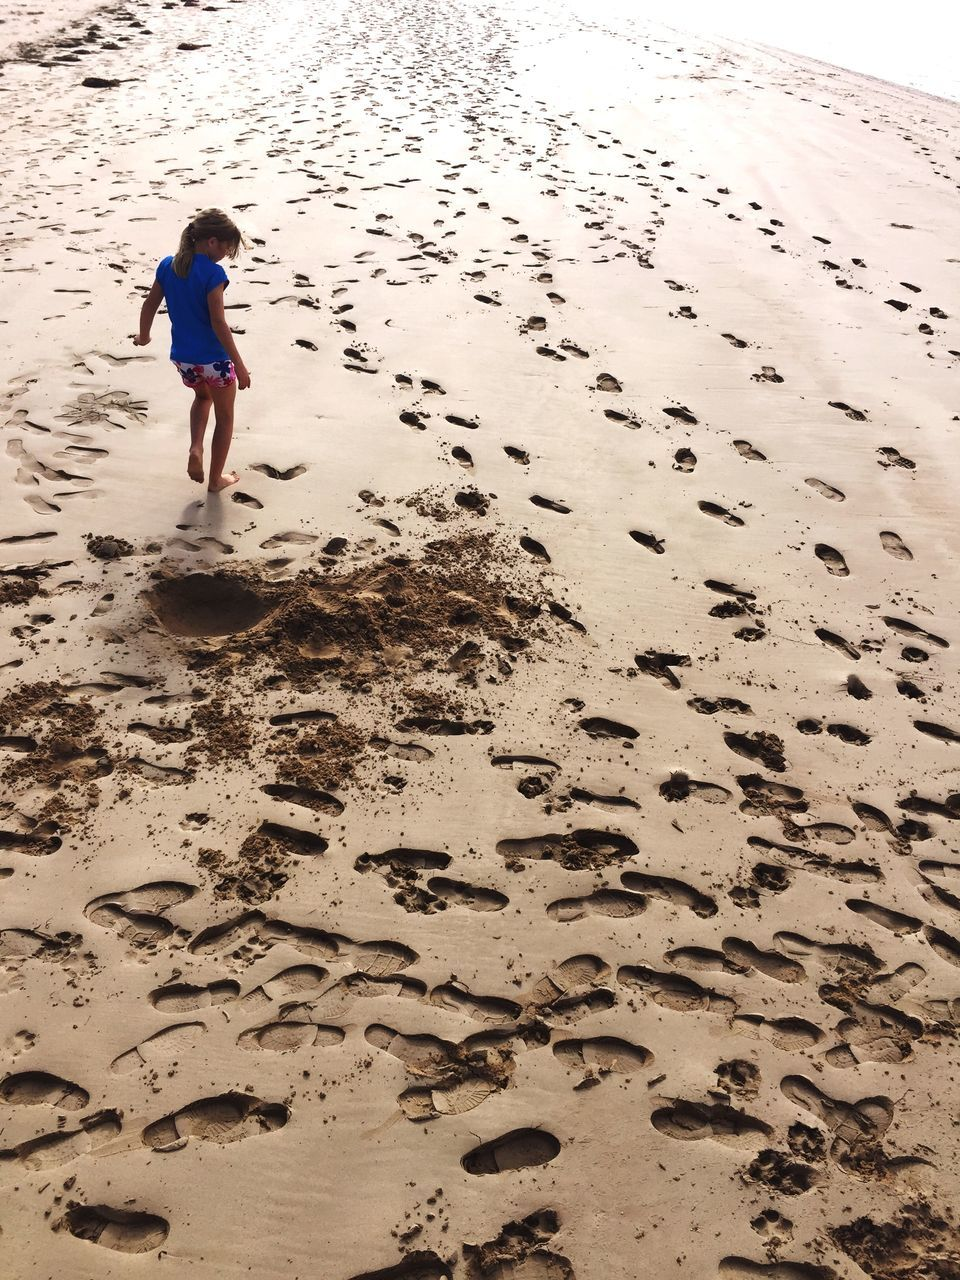 sand, beach, full length, footprint, one person, real people, outdoors, day, animal themes, nature, people